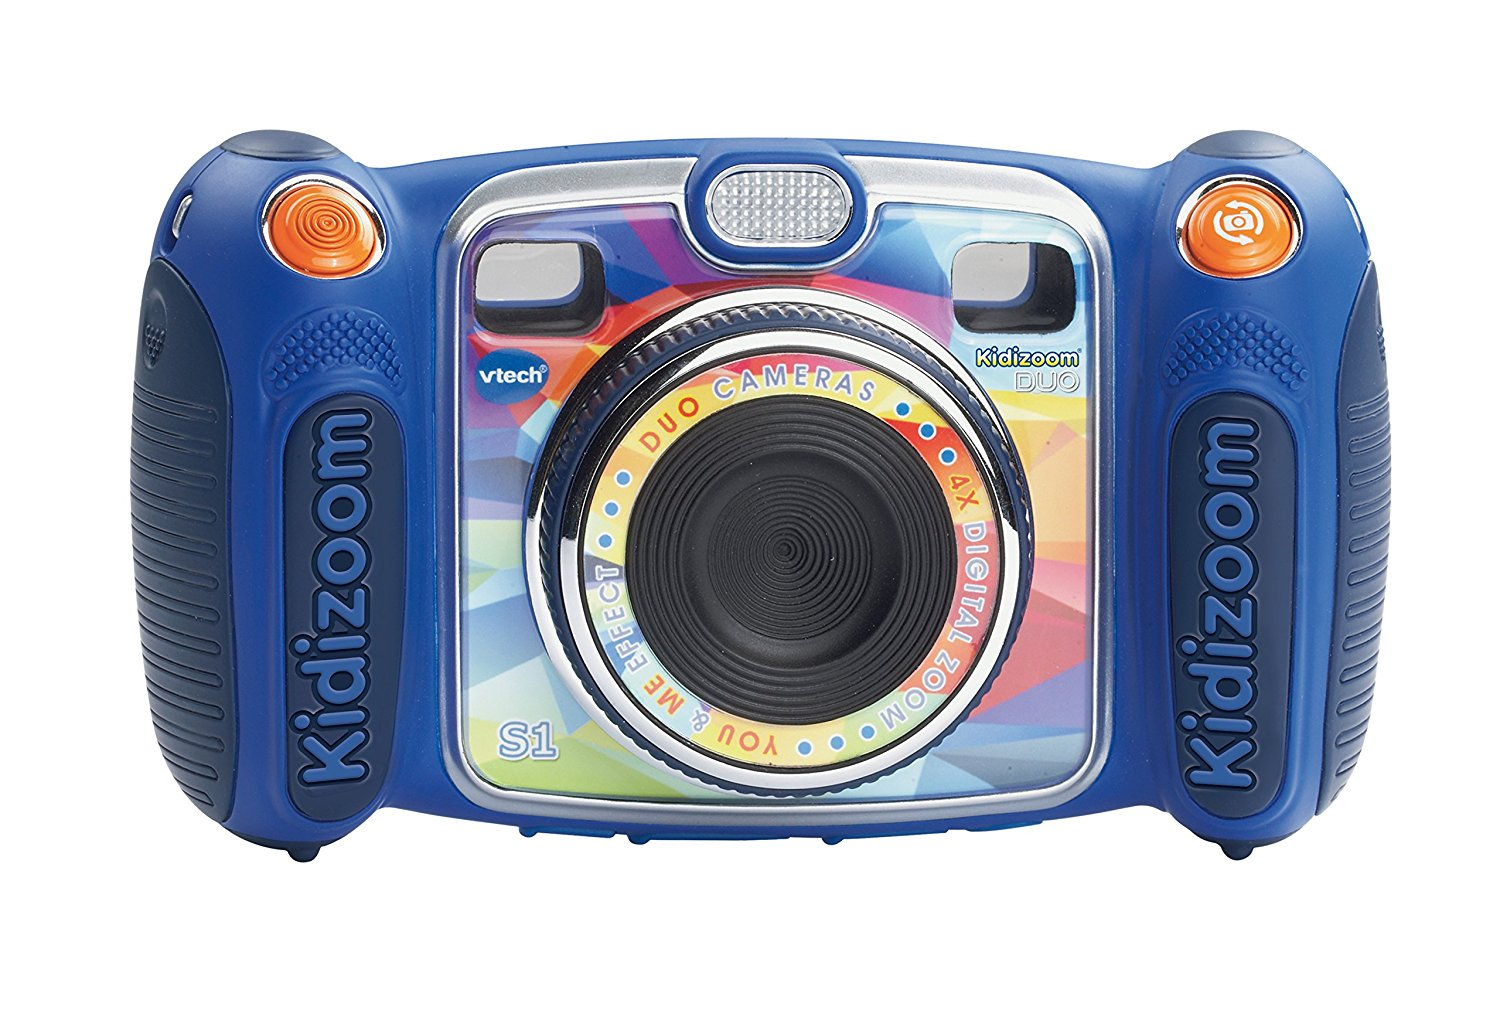 Why l switched from Sony to Vtech